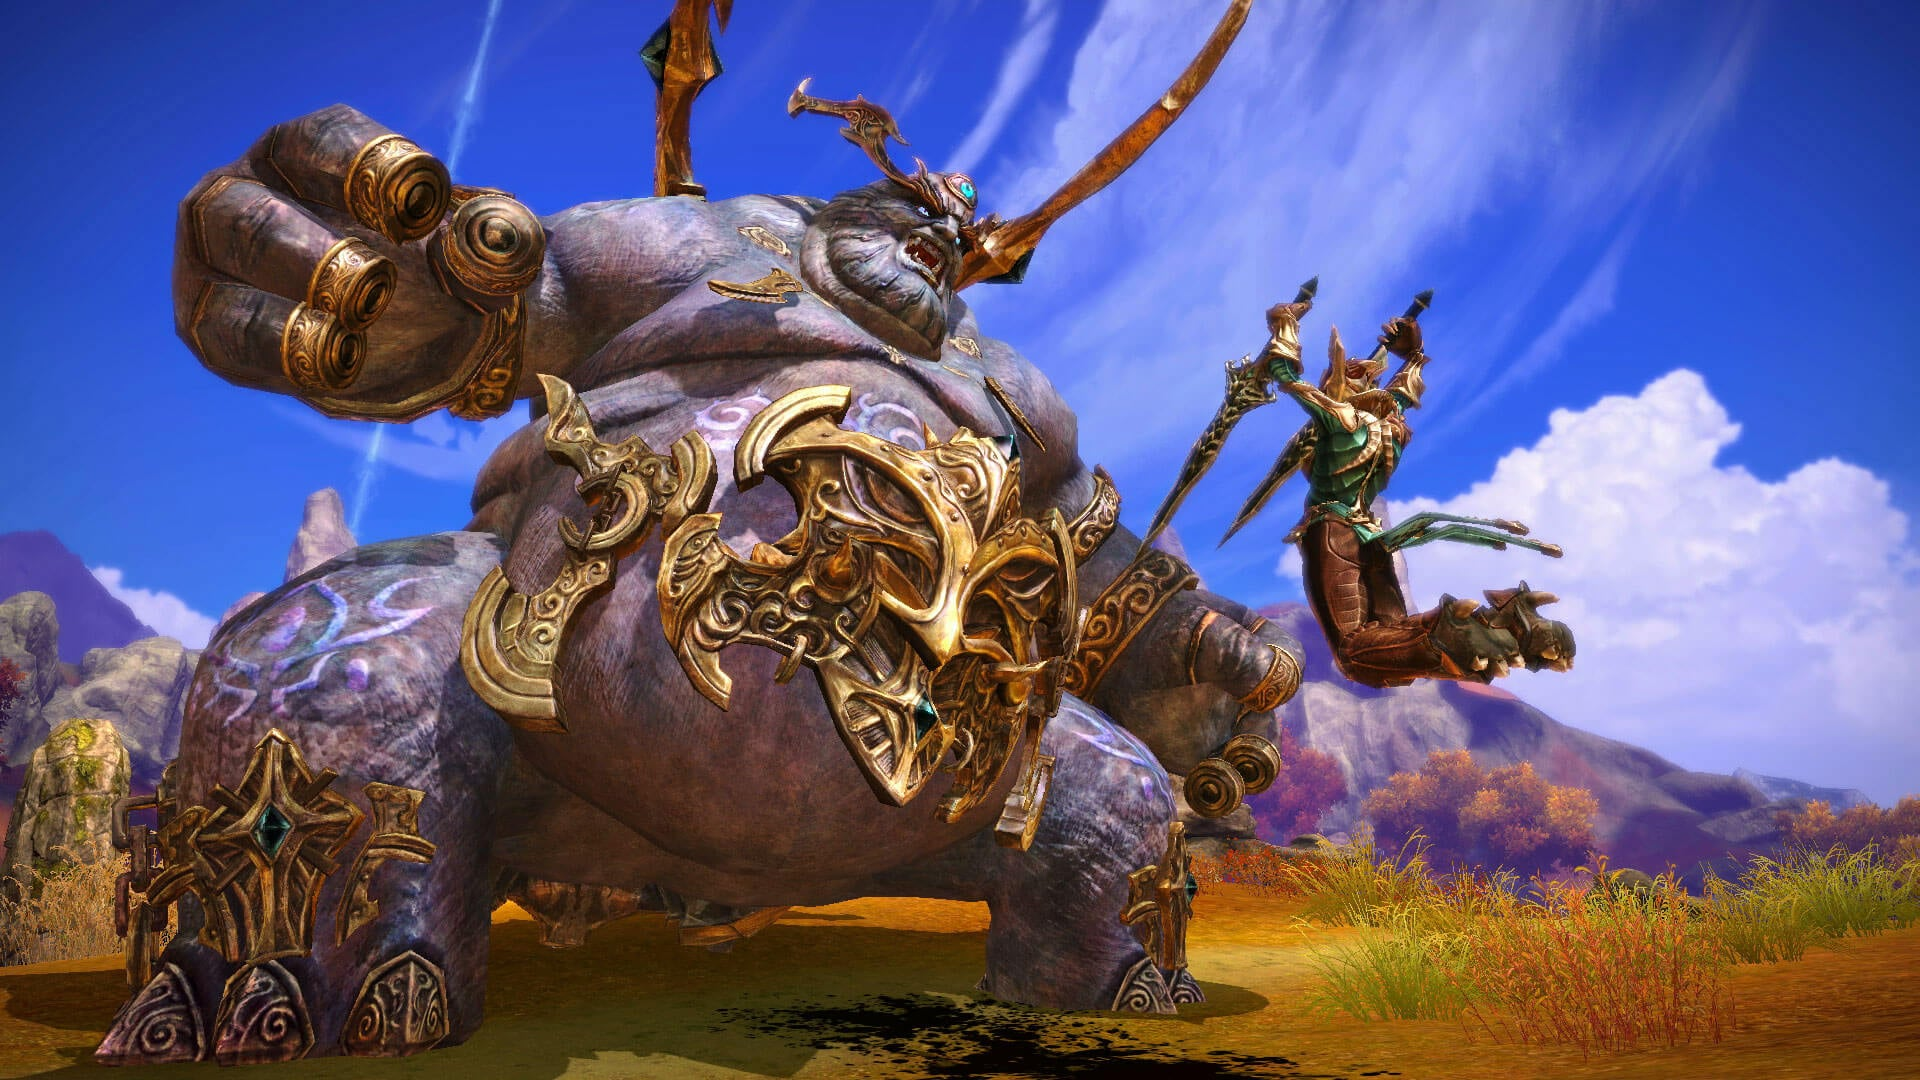 Tera online game wont launch